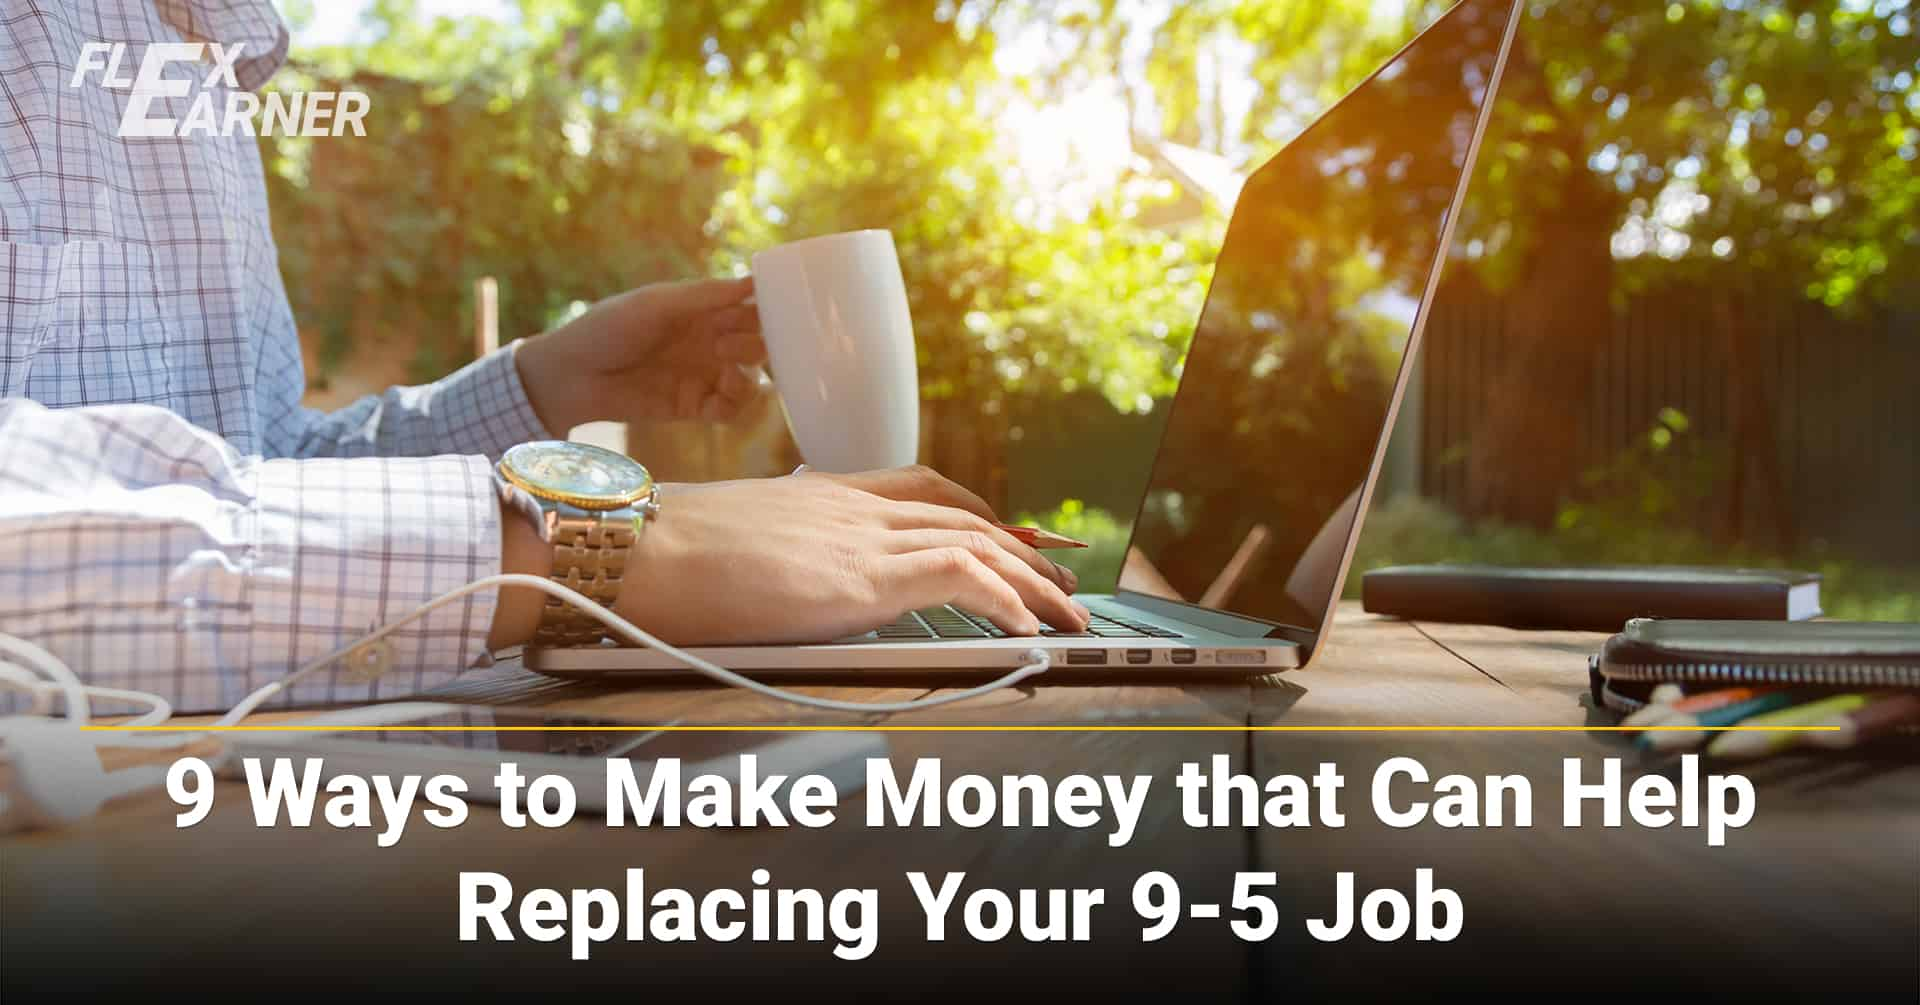 9 Ways to Make Money that Can Help Replacing Your 9-5 Job